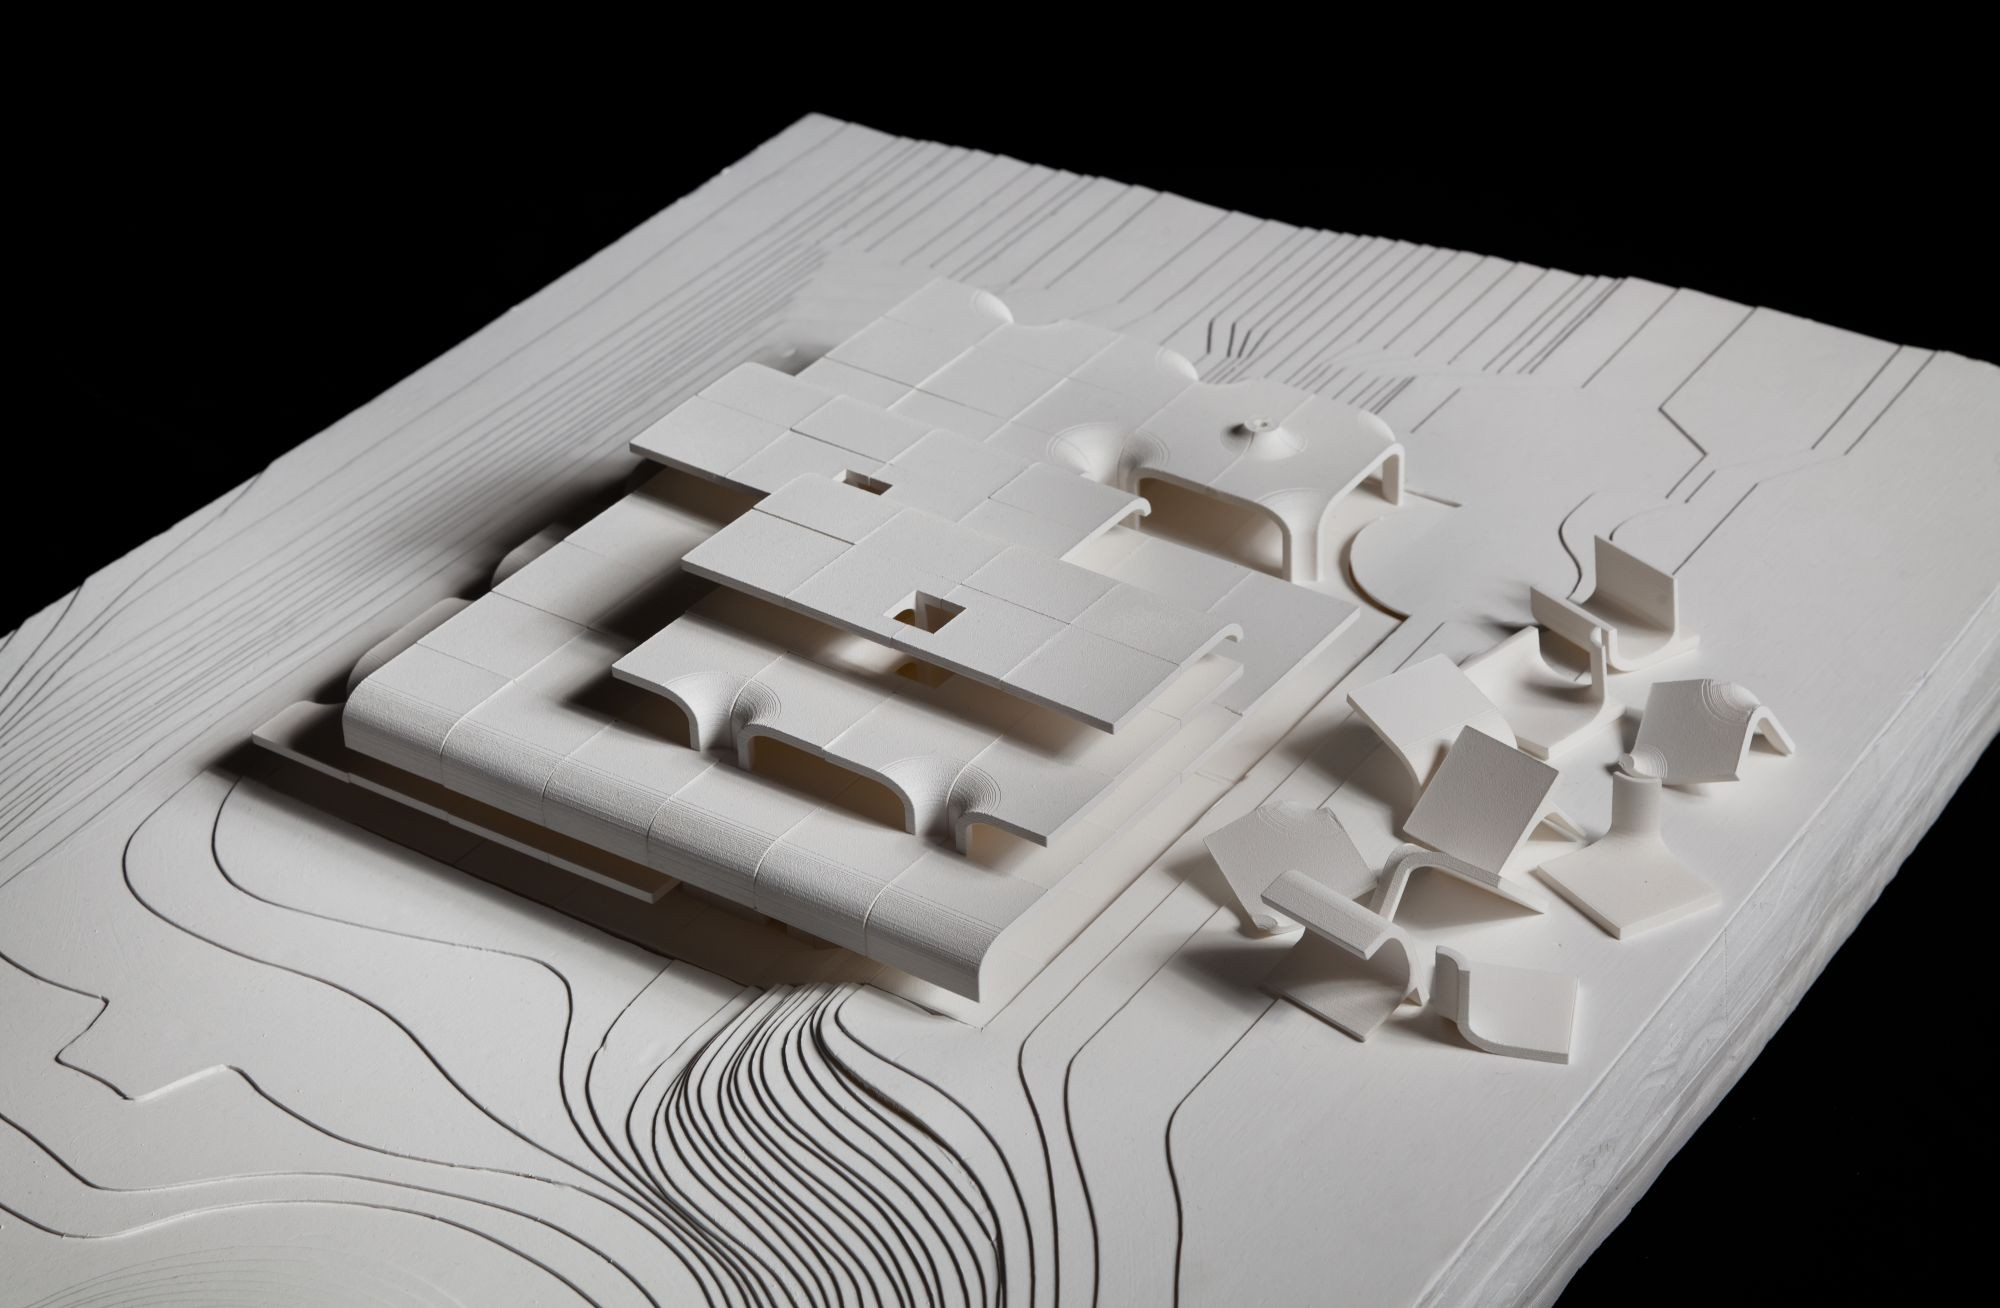 Gallery of daum space 1 mass studies 51 - Small spaces architecture model ...